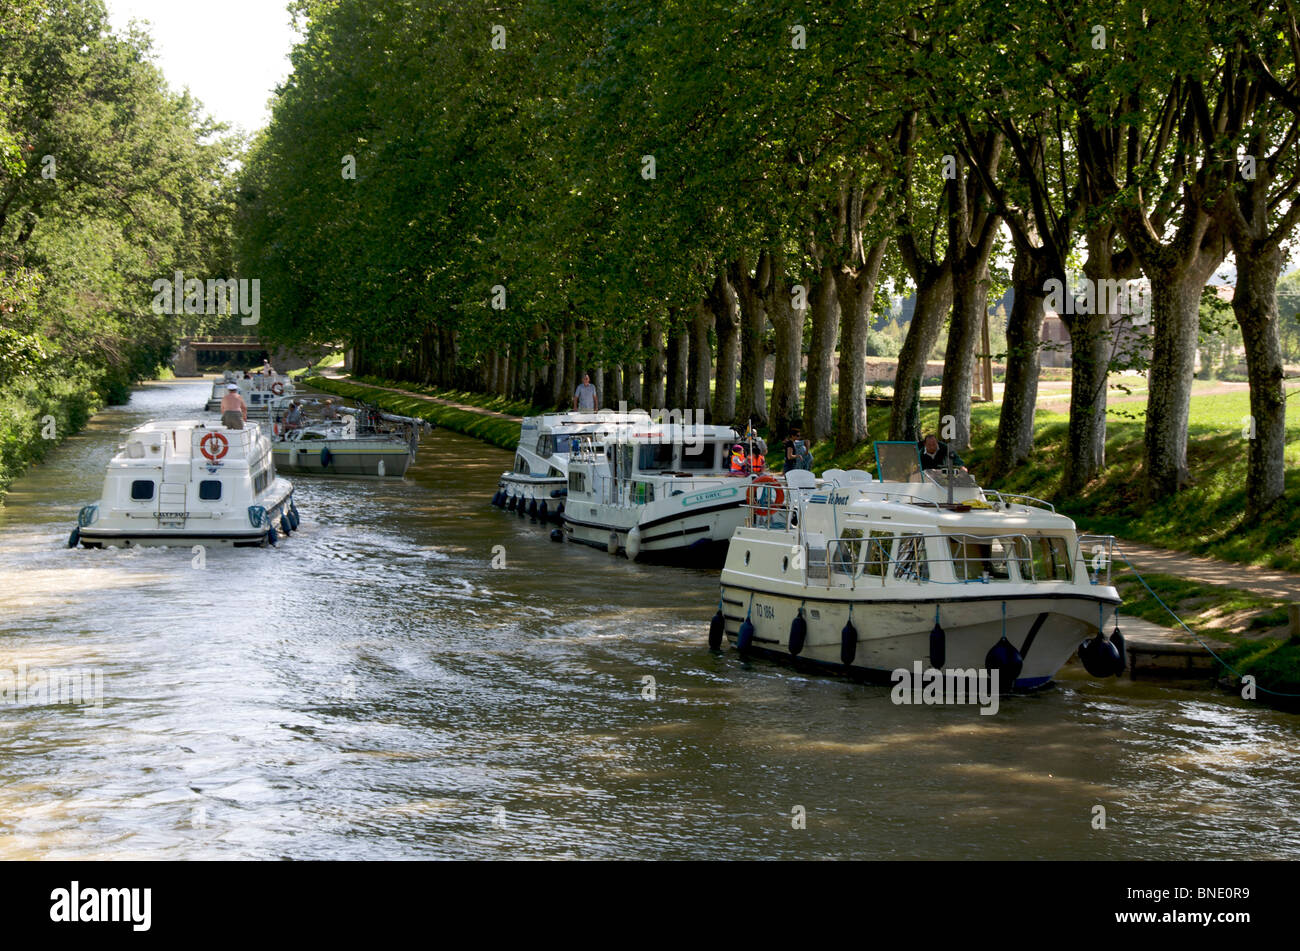 Boats on the Canal du Midi in Languedoc, France - Stock Image